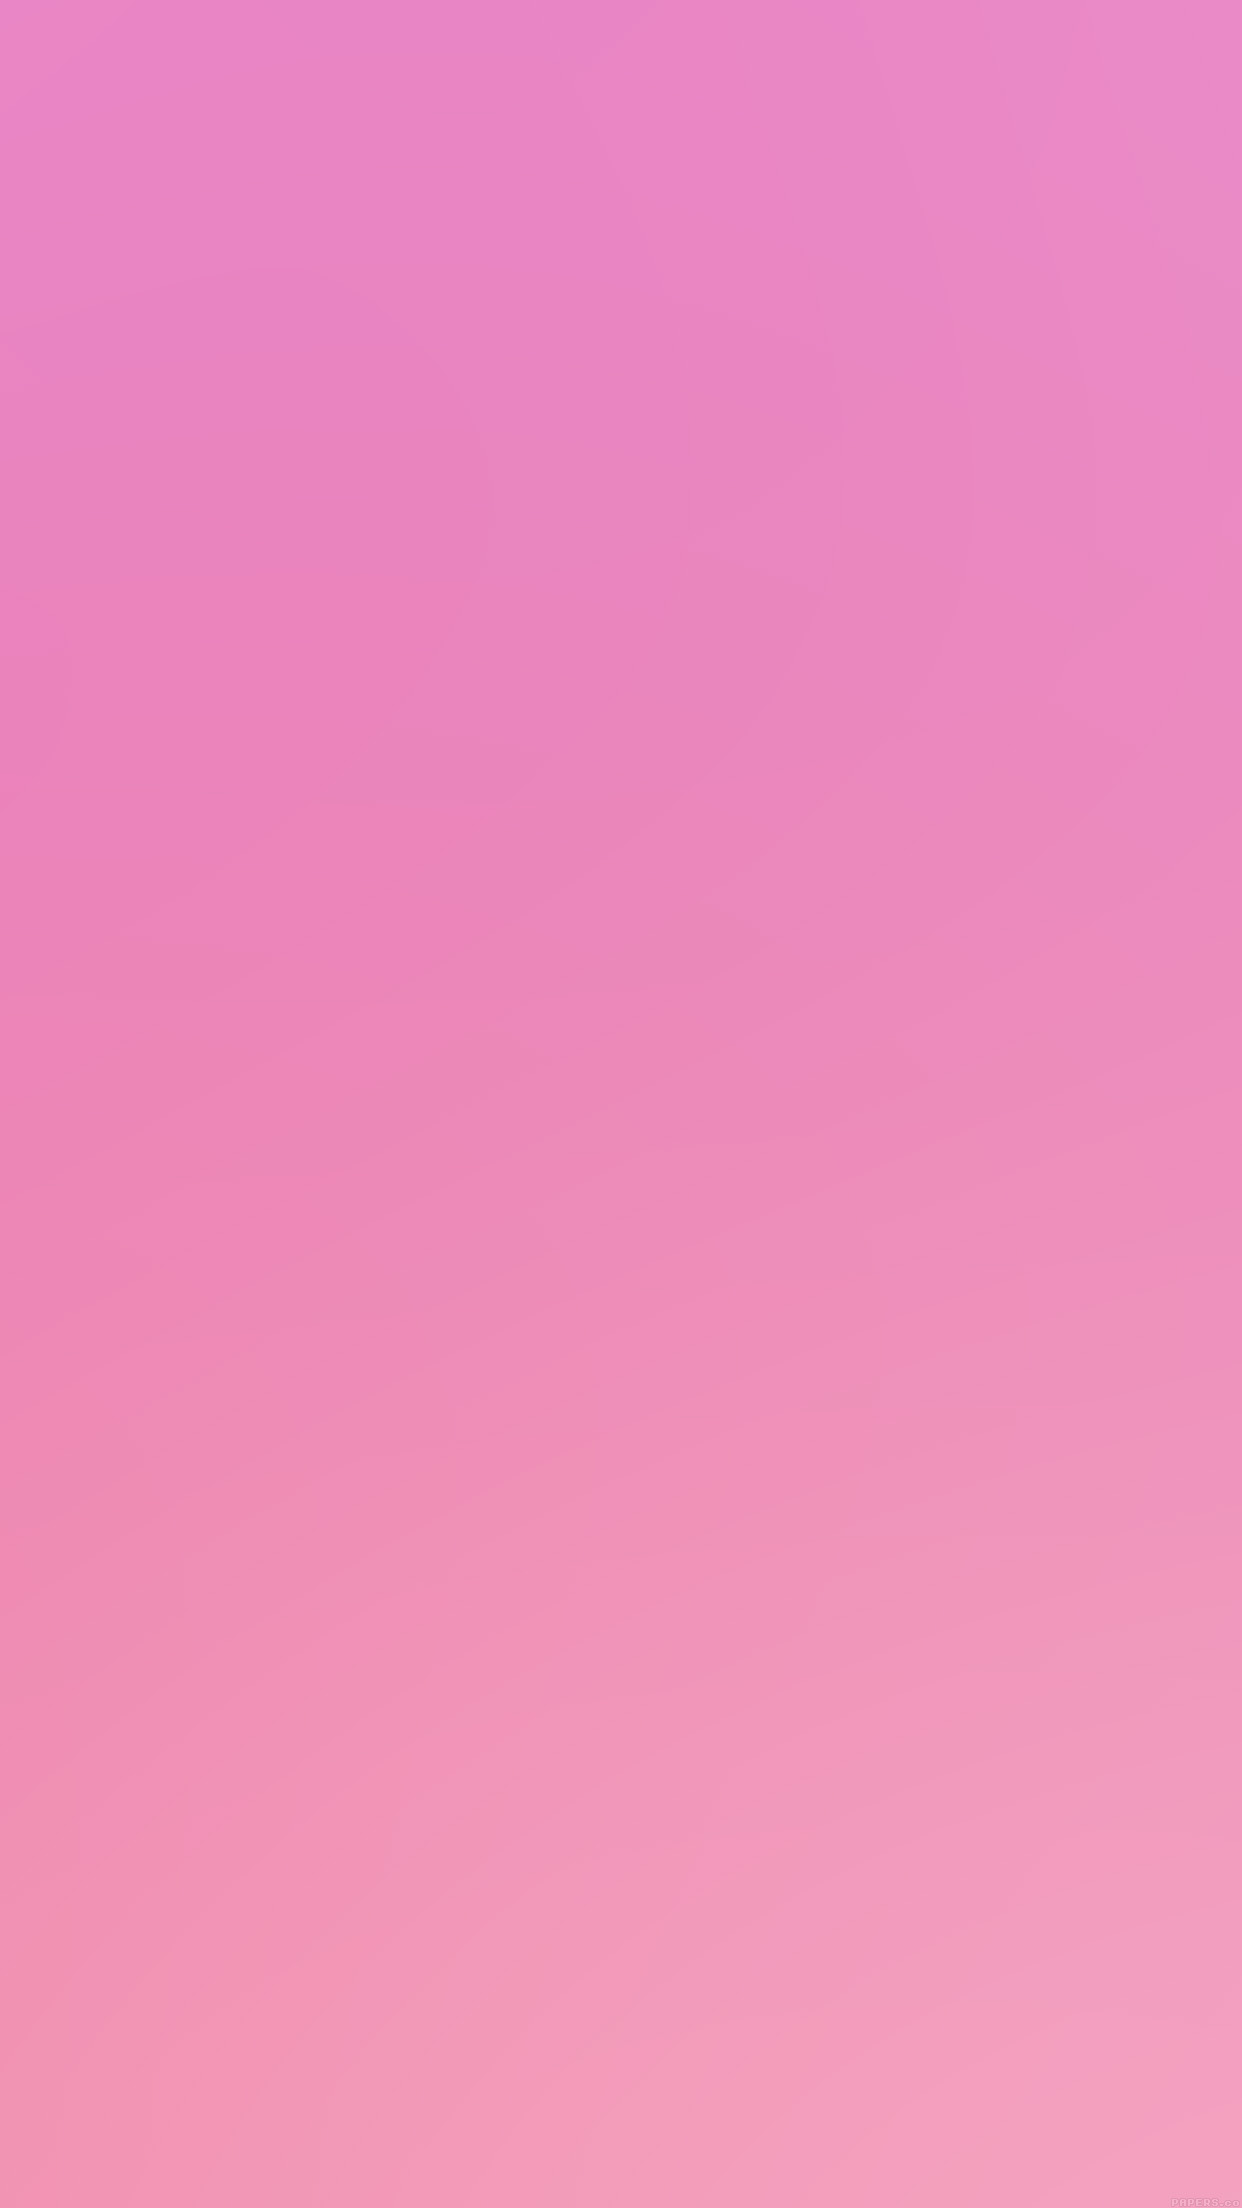 Iphone6papers Se52 Baby Pink Gradation Blur